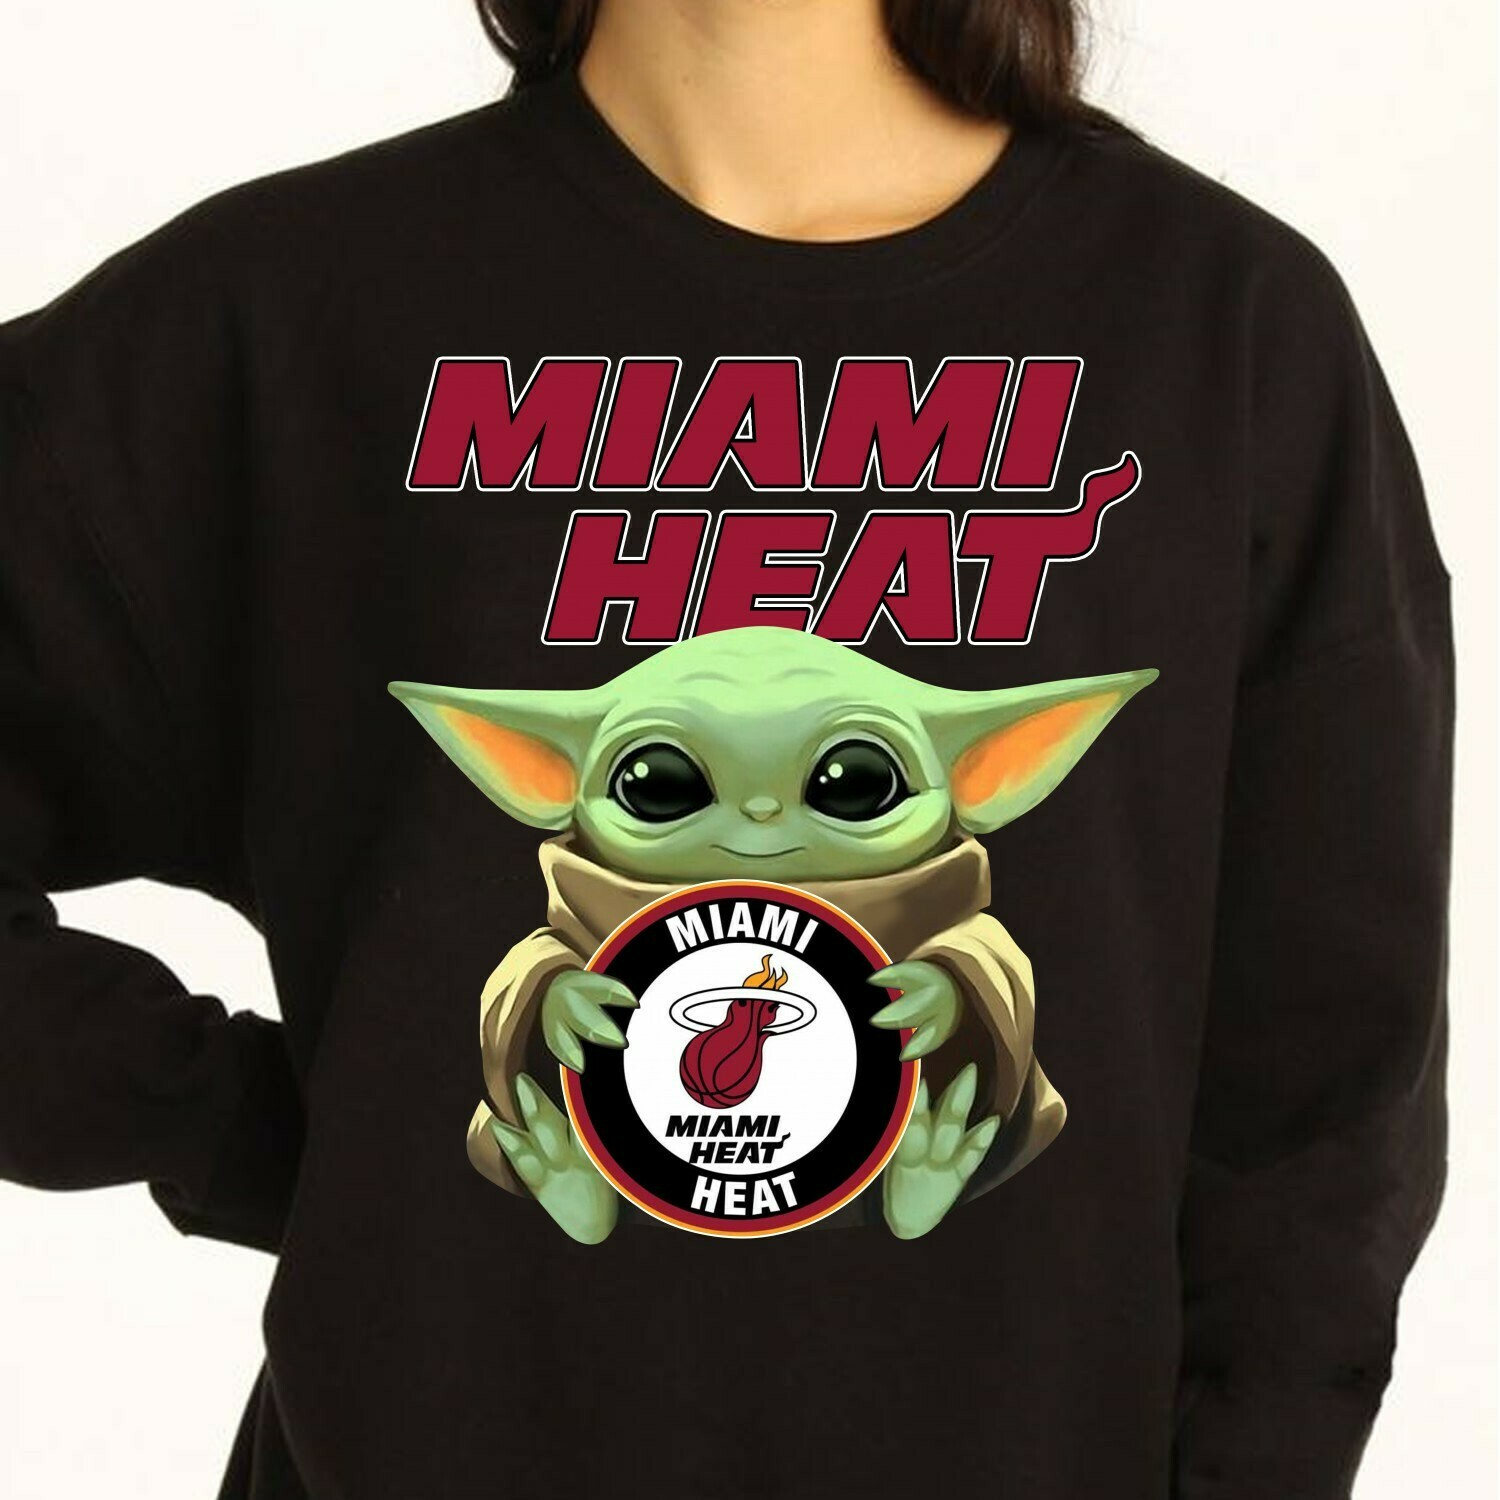 Miami Heat Baby Yoda Star Wars The Mandalorian The Child First Memories Floating NBA Basketball Dad Mon Kid Fan Gift T-Shirt Long Sleeve Sweatshirt Hoodie Jolly Family Gifts